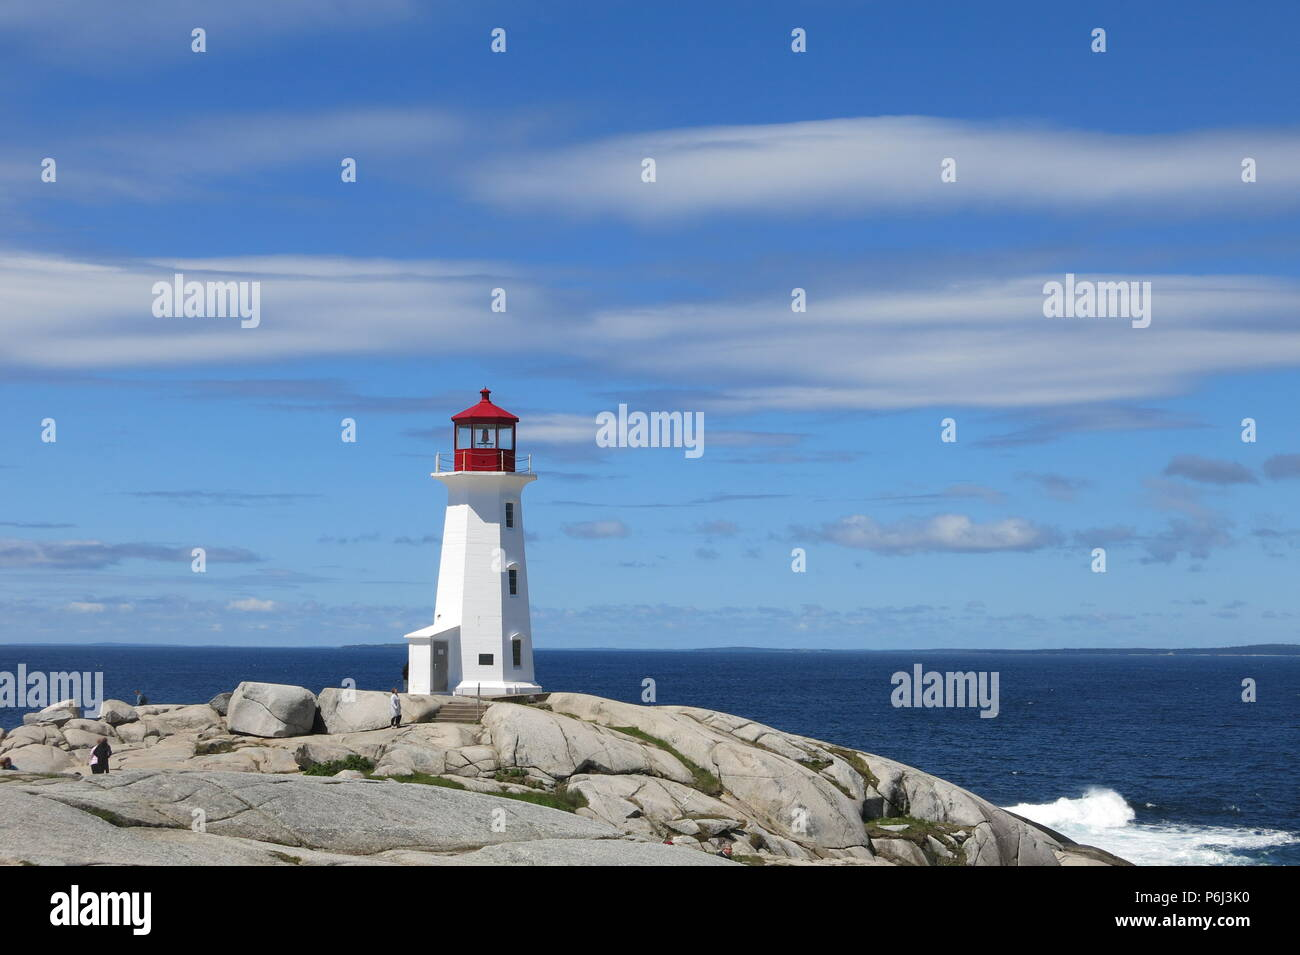 The red and white lighthouse on an outcrop of granite boulders at Peggys Cove, Nova Scotia, Canada - Stock Image